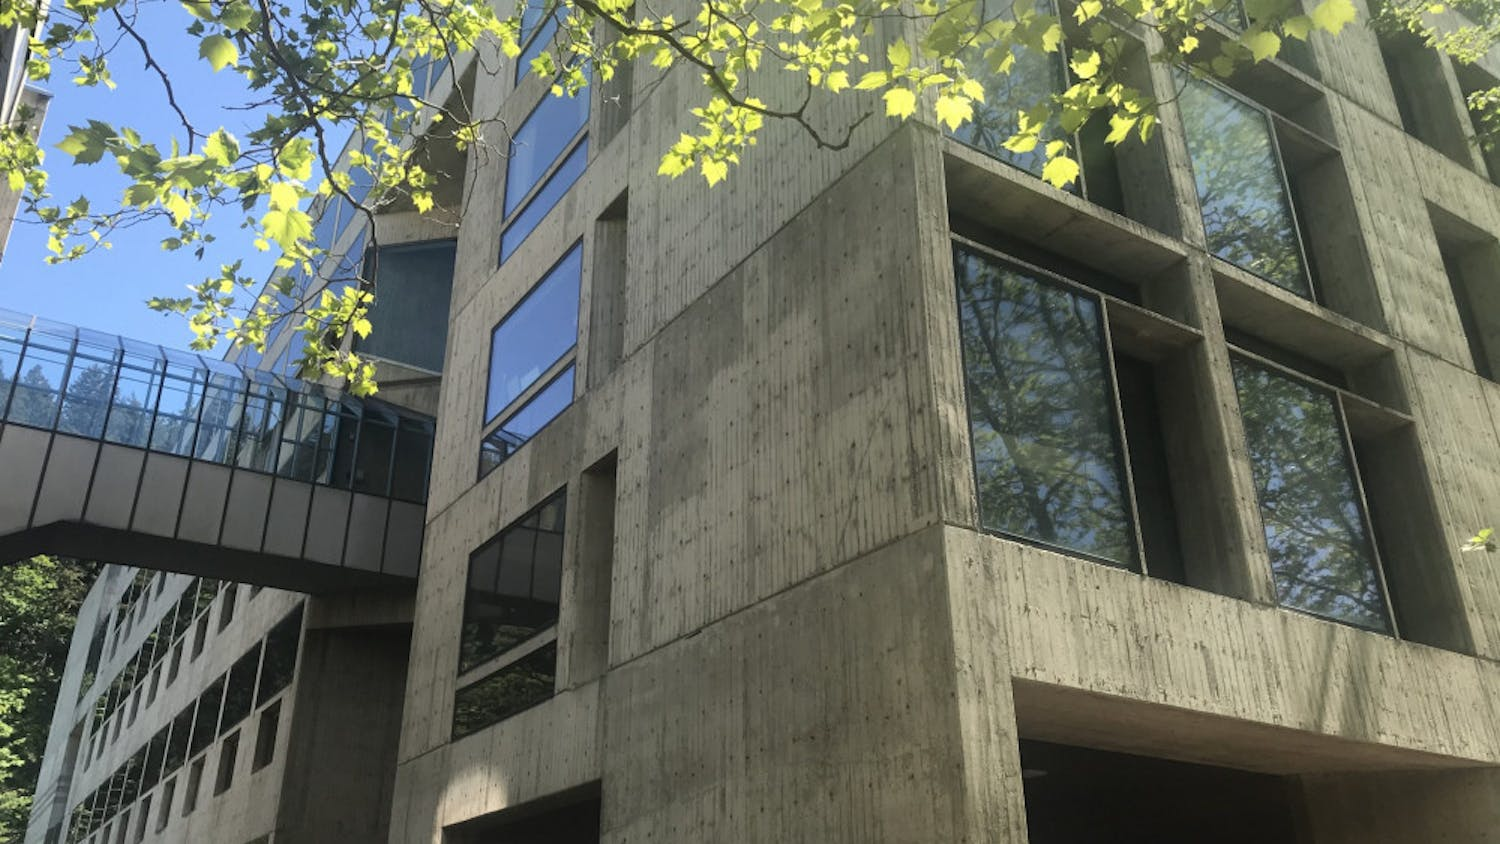 A view of Western Washington University's Huxley College of the Environment. The Legacy Review Task Force's deadline approaches to submit recommendations for the new building name. // Photo by Kate Yeoman